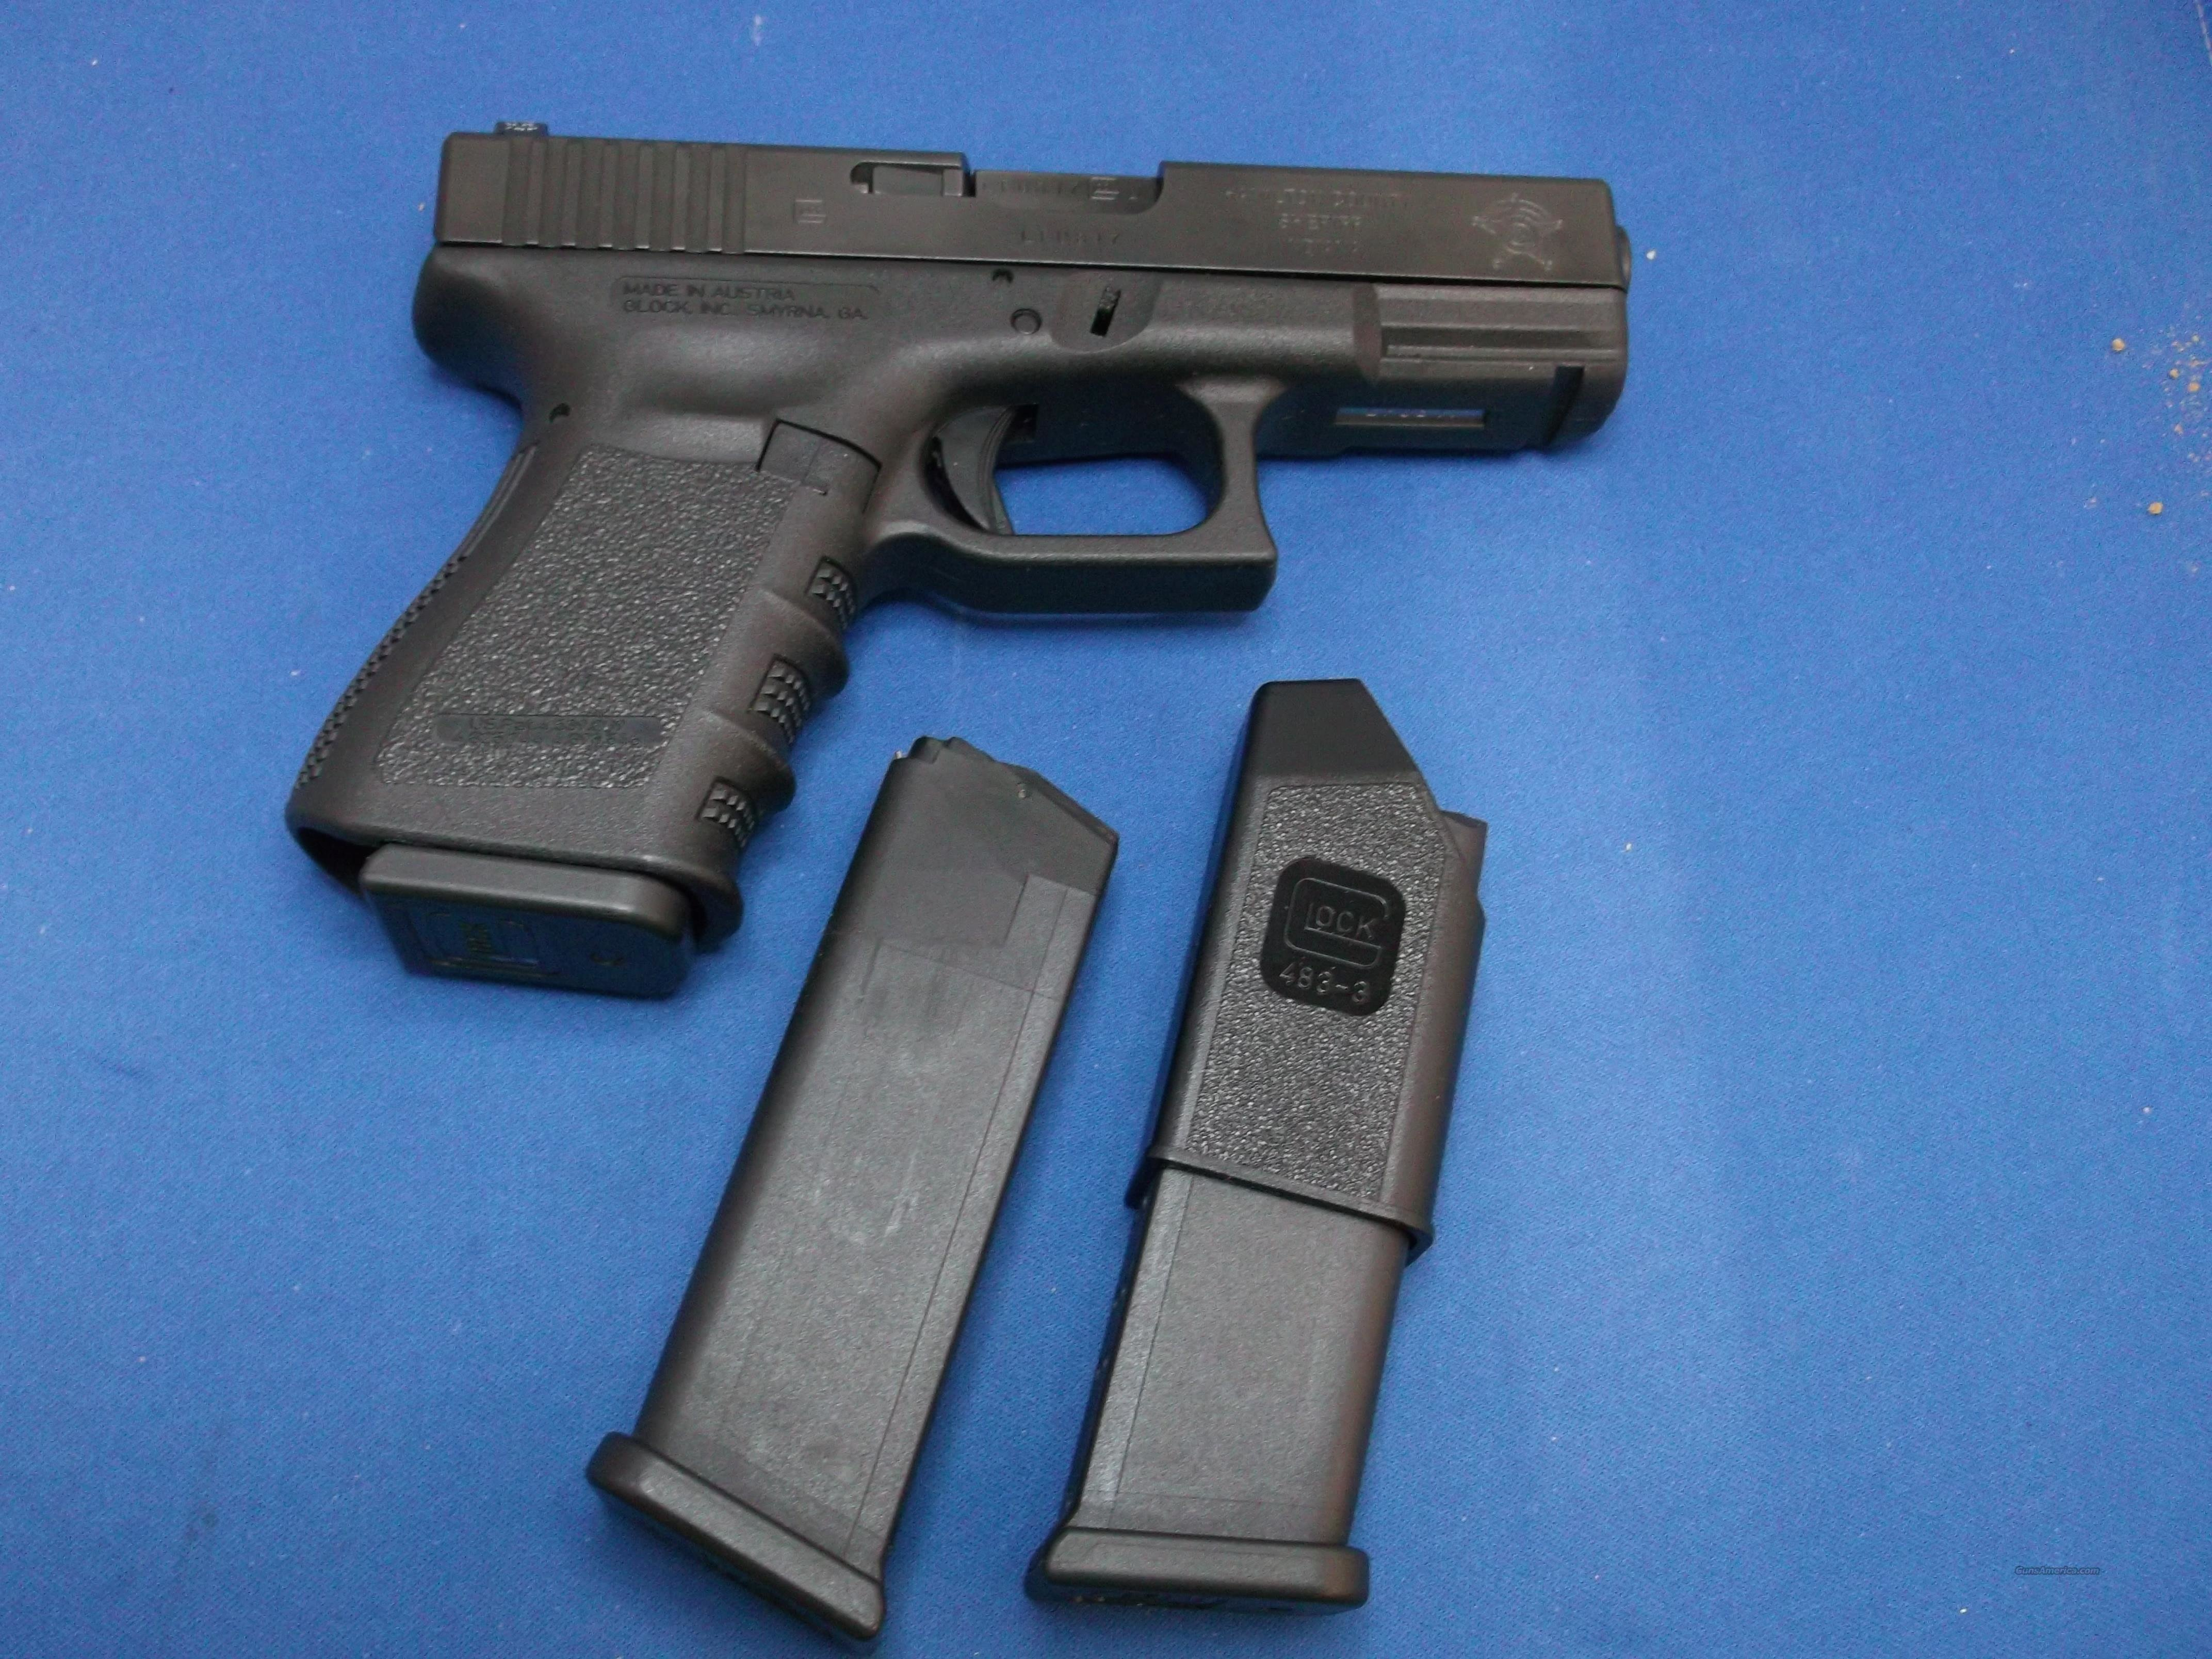 Glock 23, .40 S&W, 3 Mags, Night sights  Guns > Pistols > Glock Pistols > 23